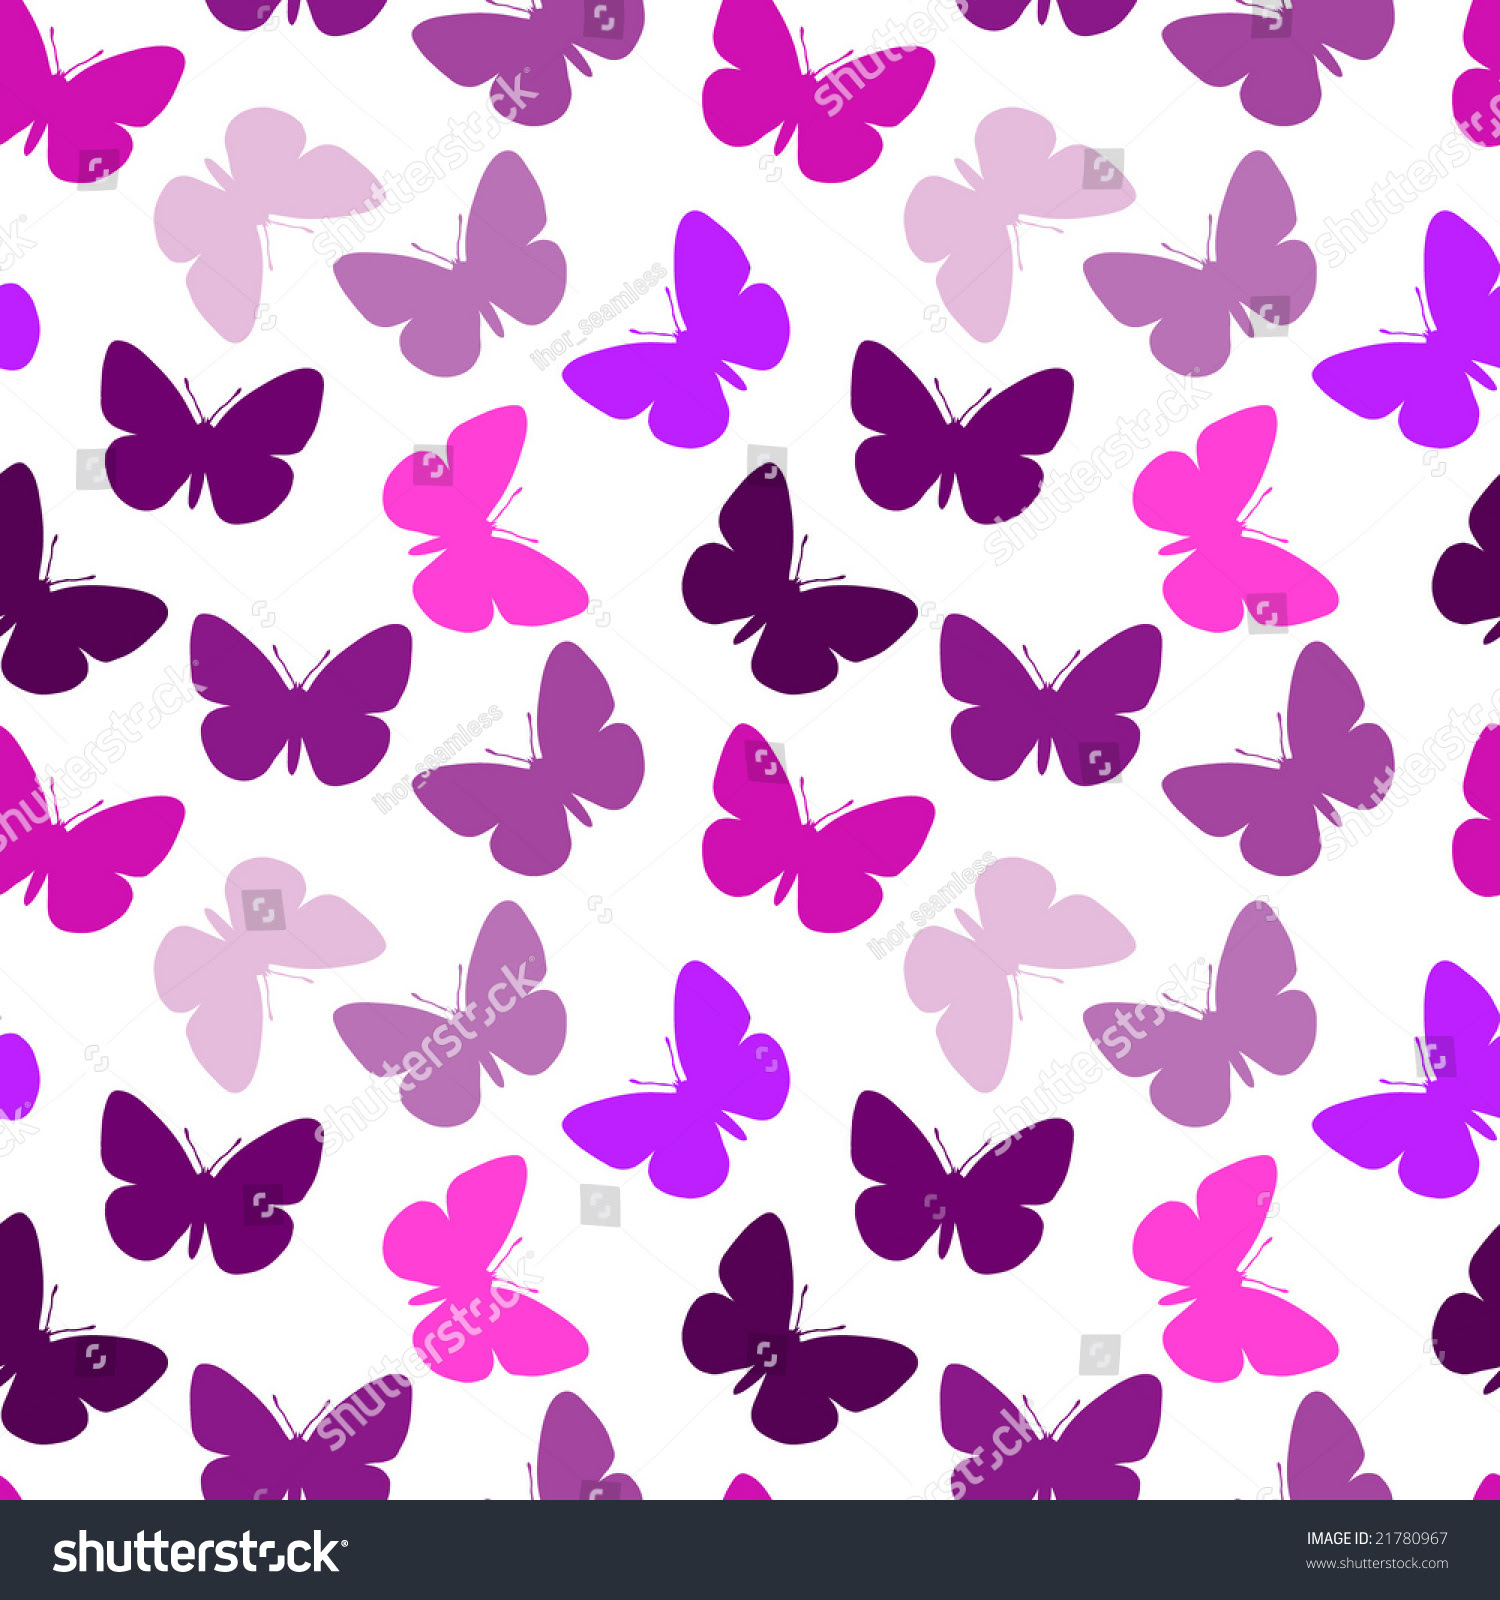 habrumalas: Pink And Purple Background With Butterflies Images